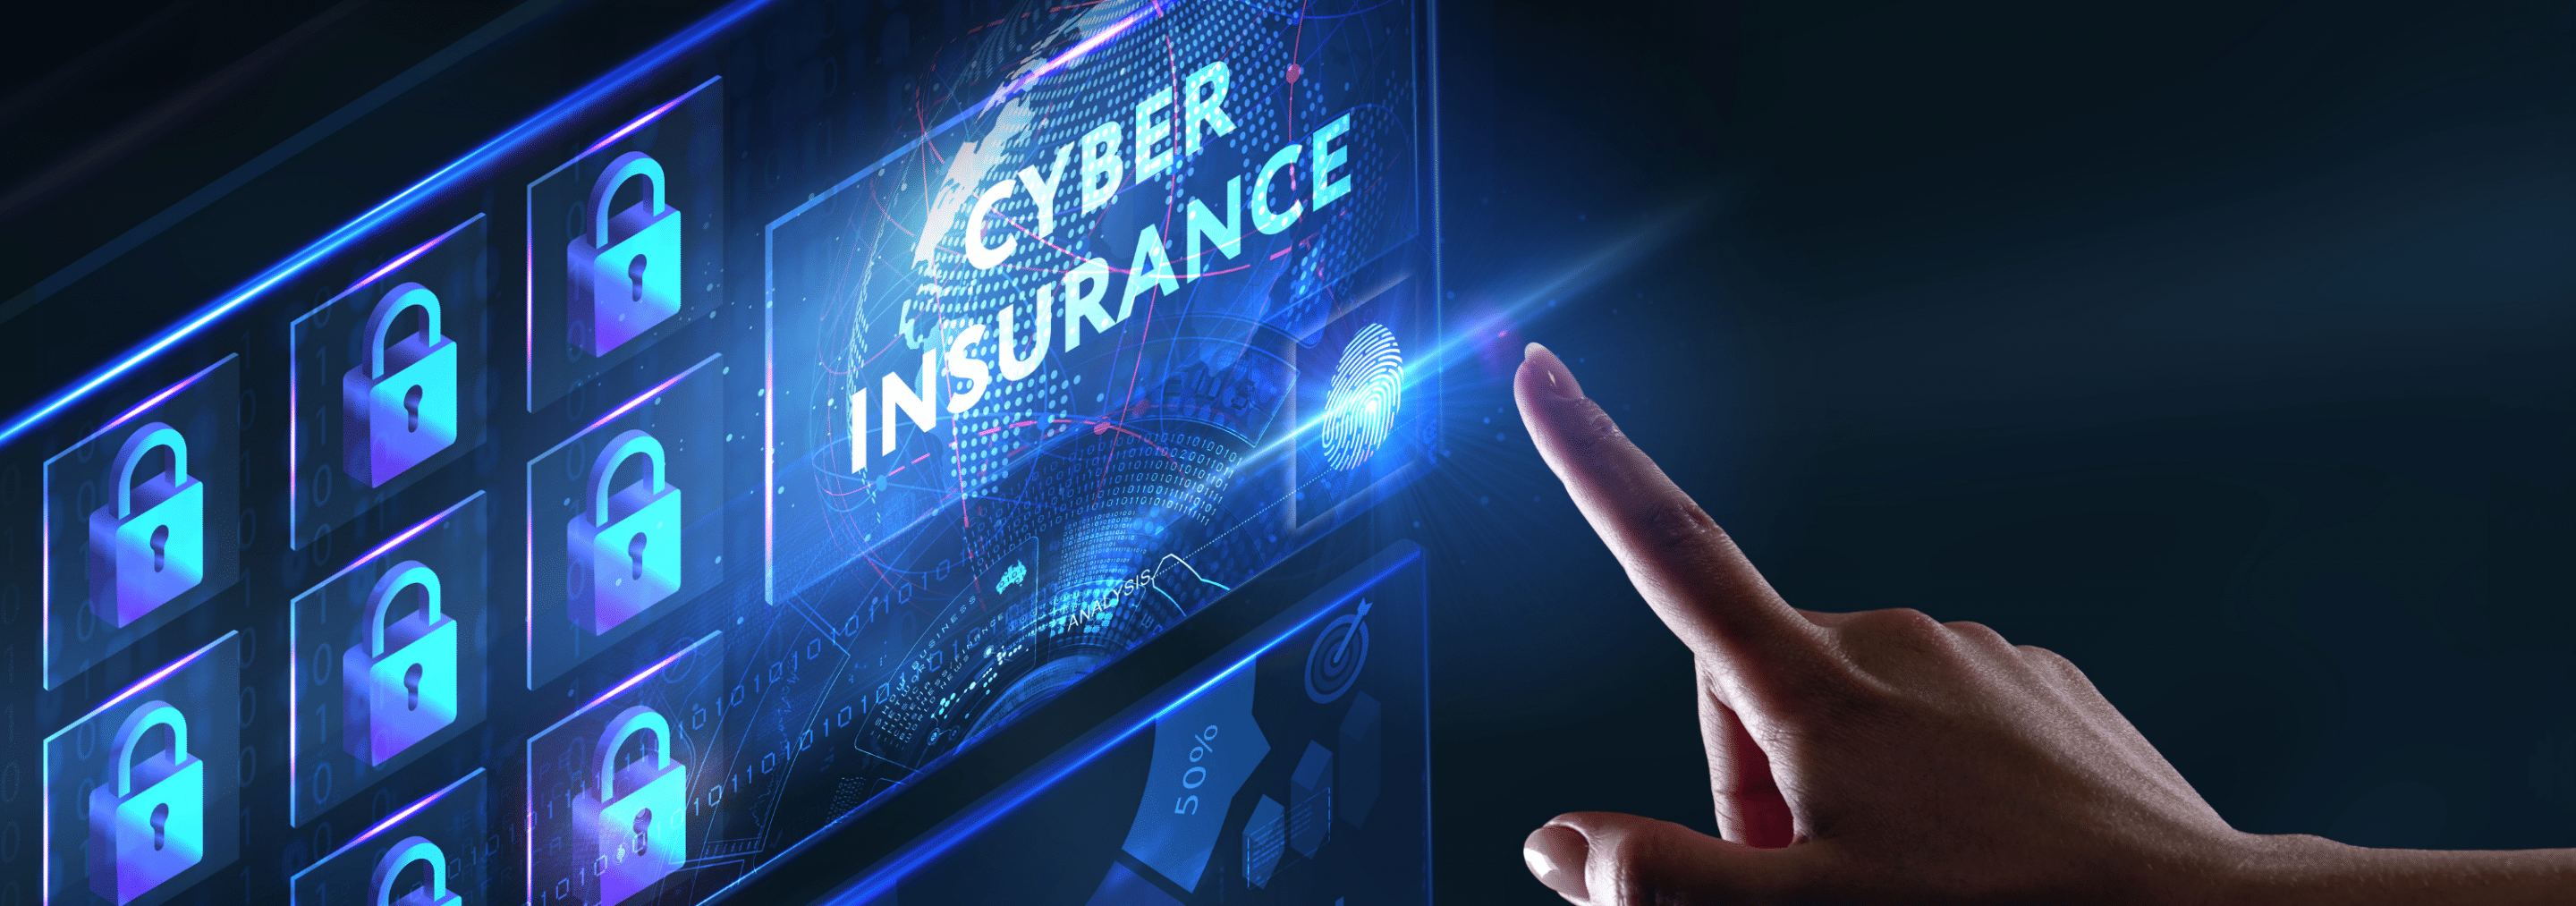 How to Prepare for Cyber Insurance